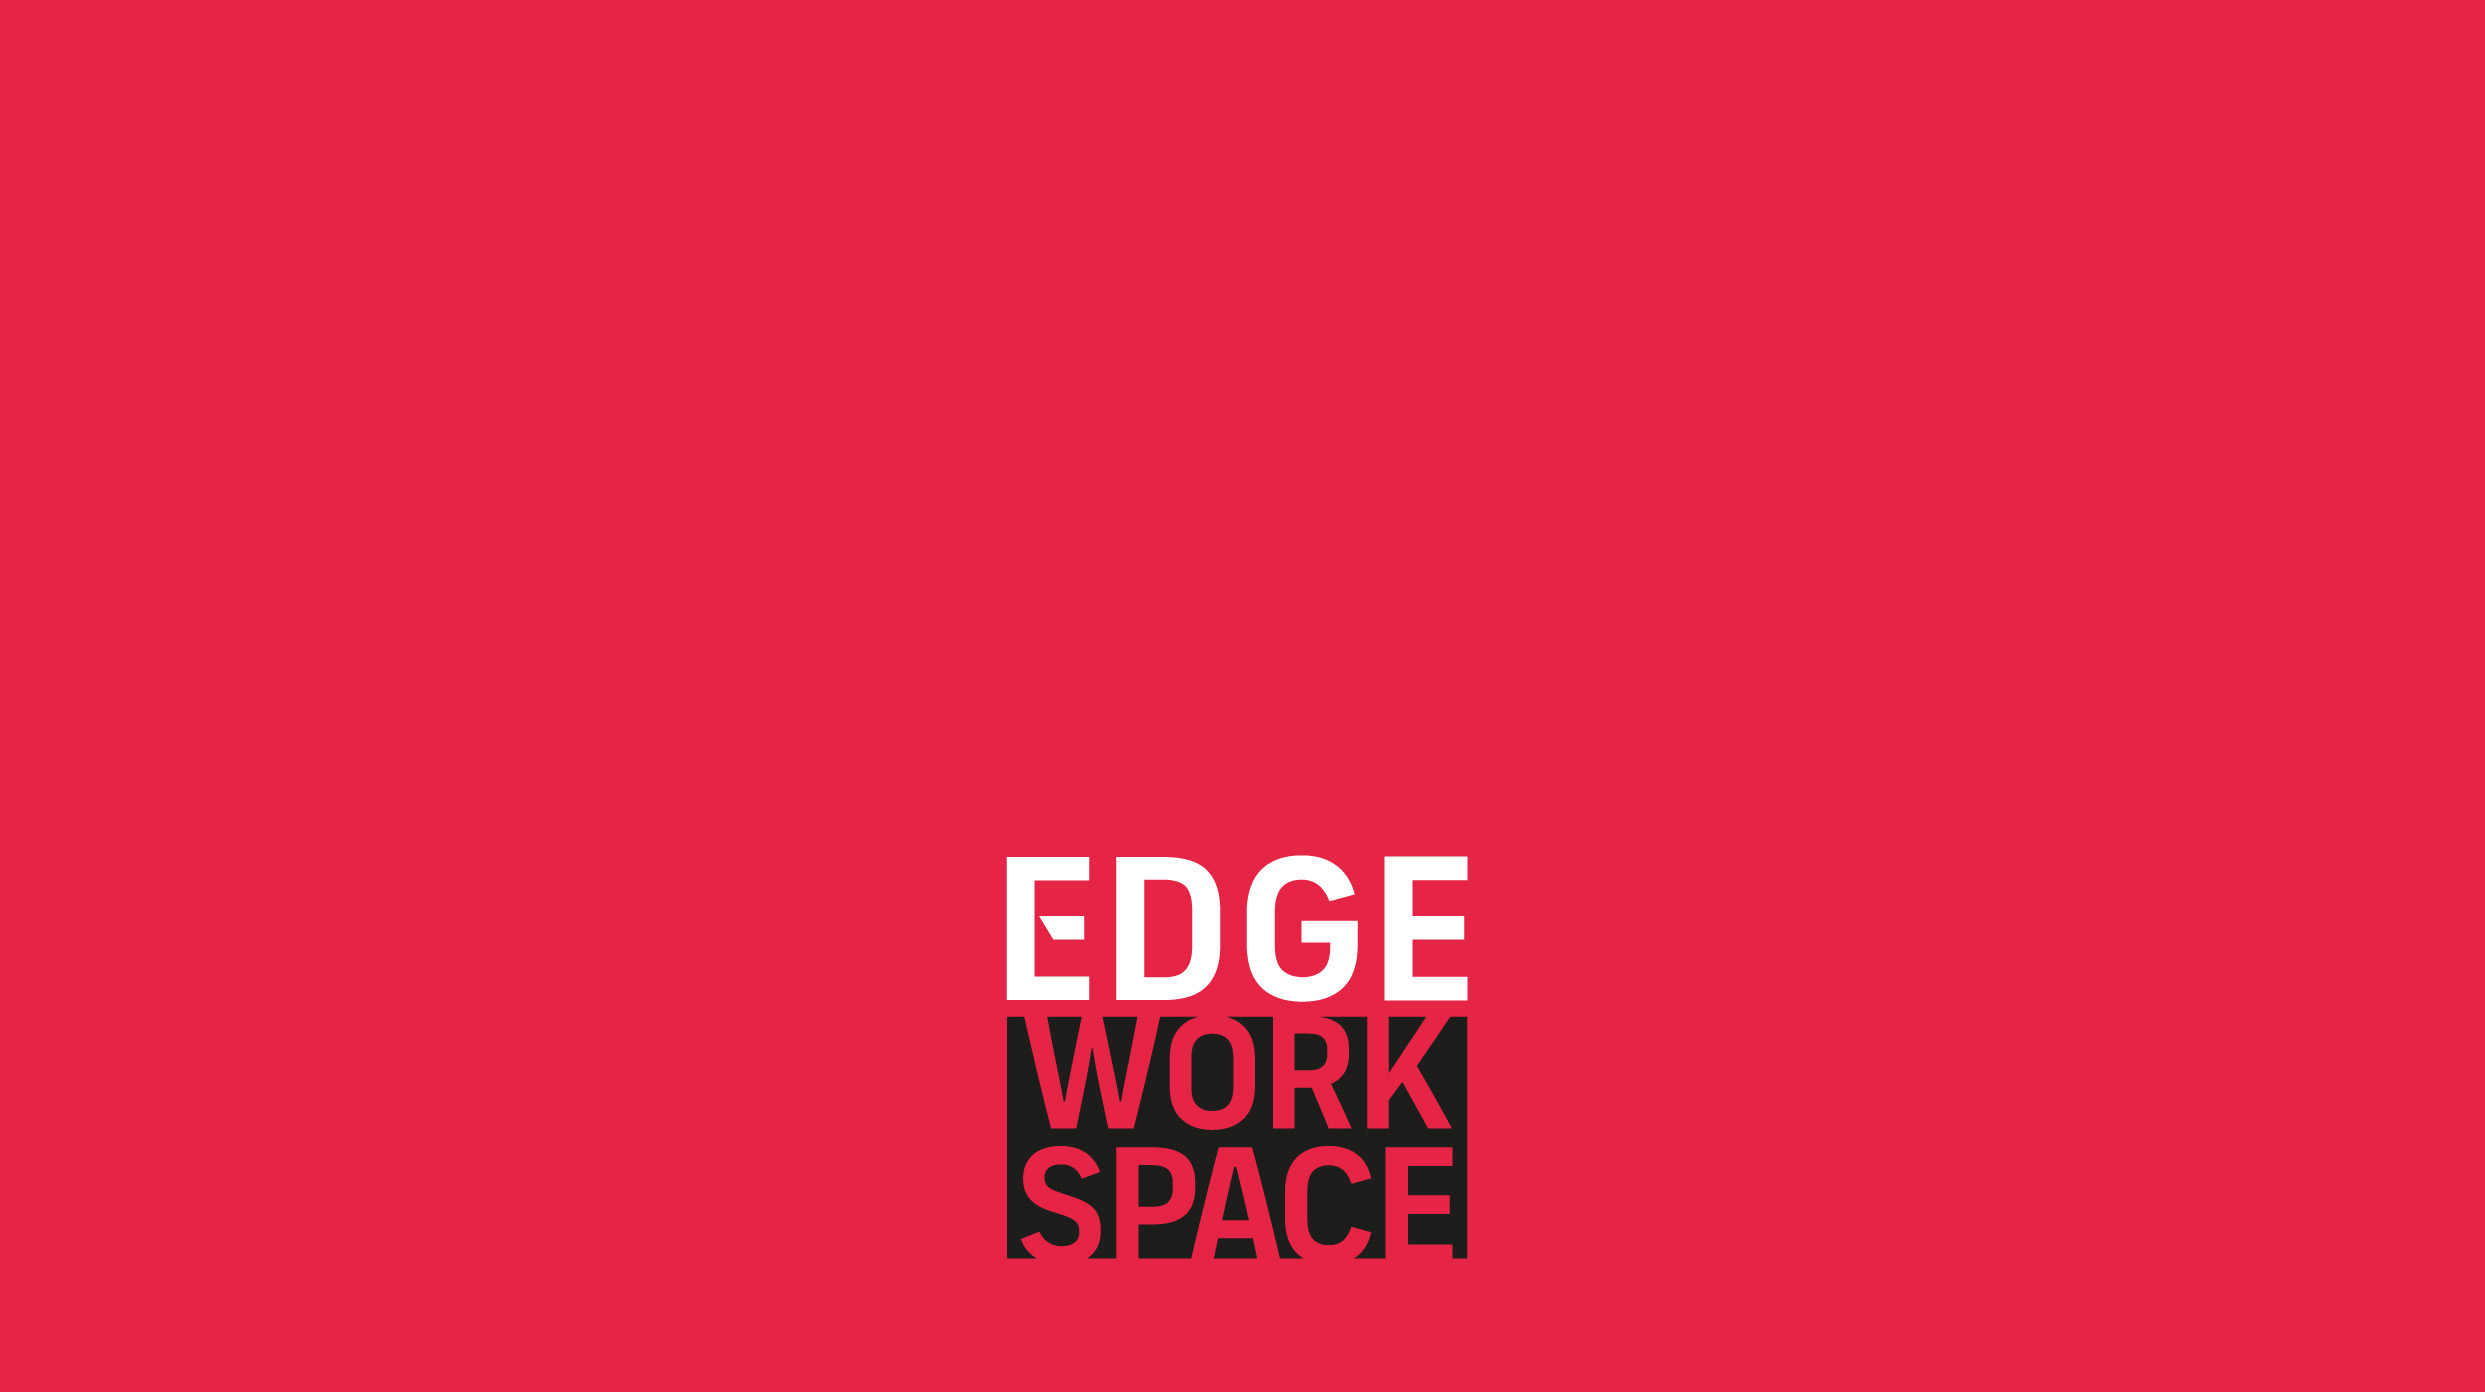 LMPP Edge Workspace End page.jpg